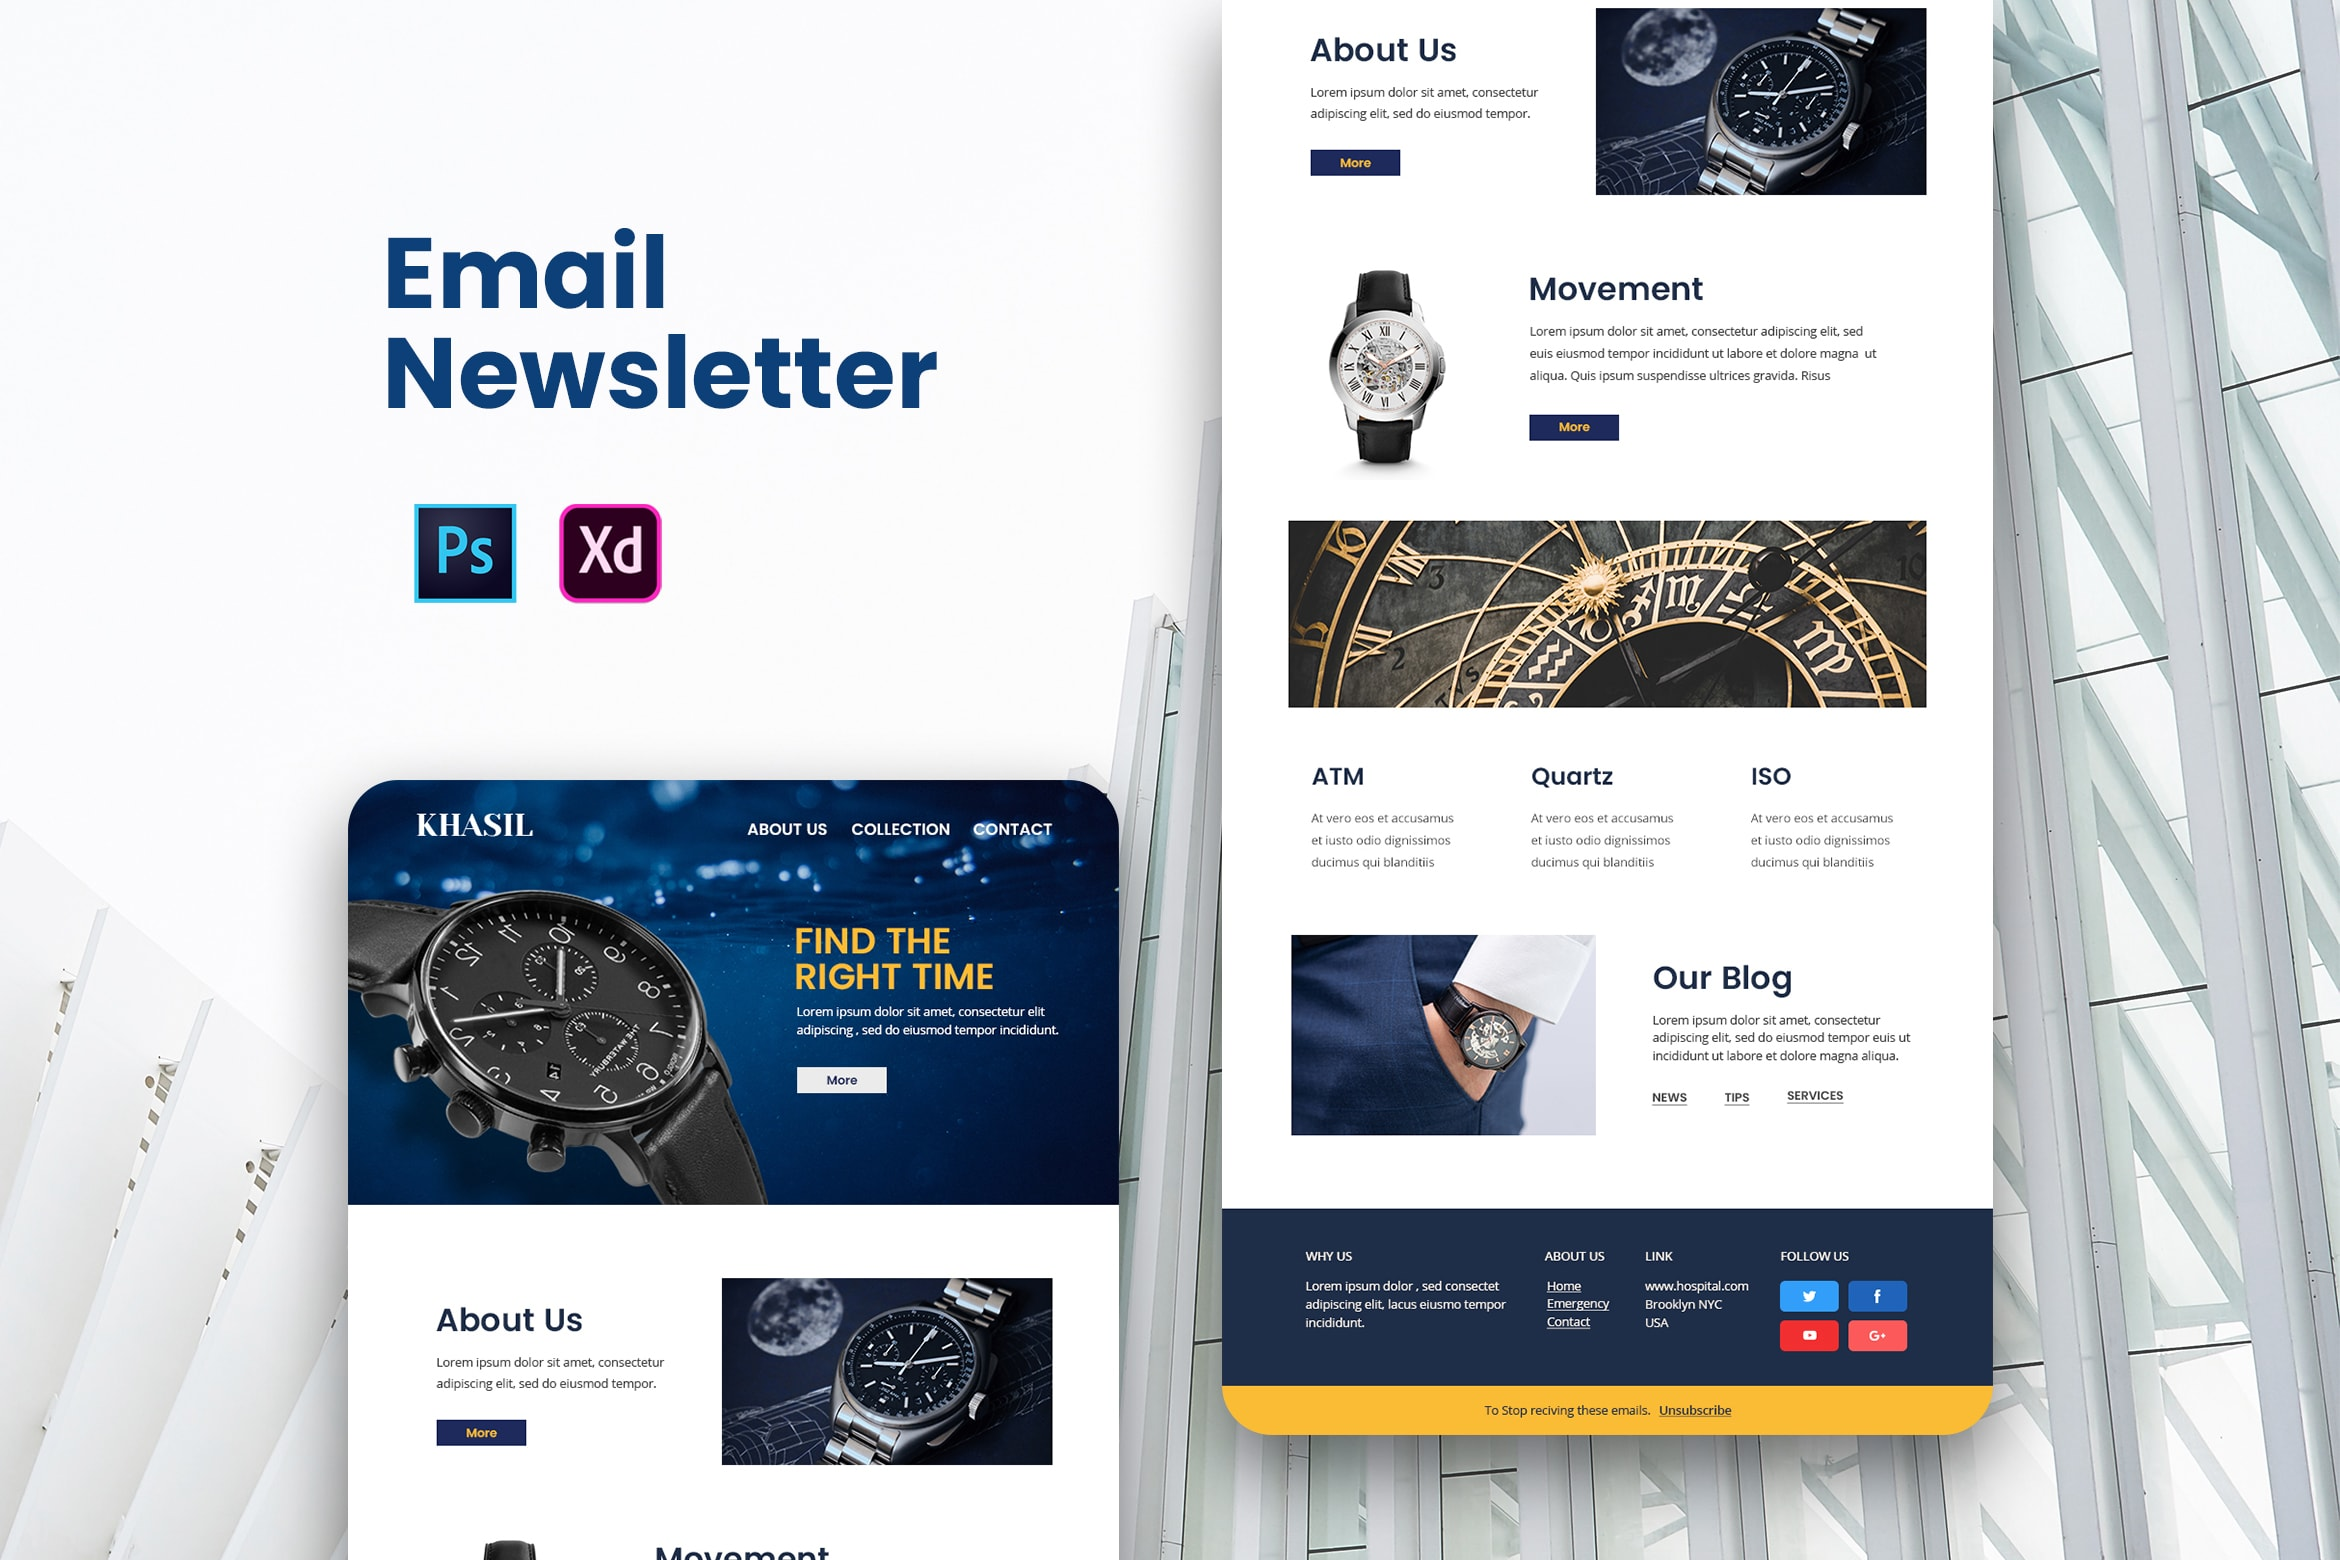 Wristwatch Store - Email Newsletter